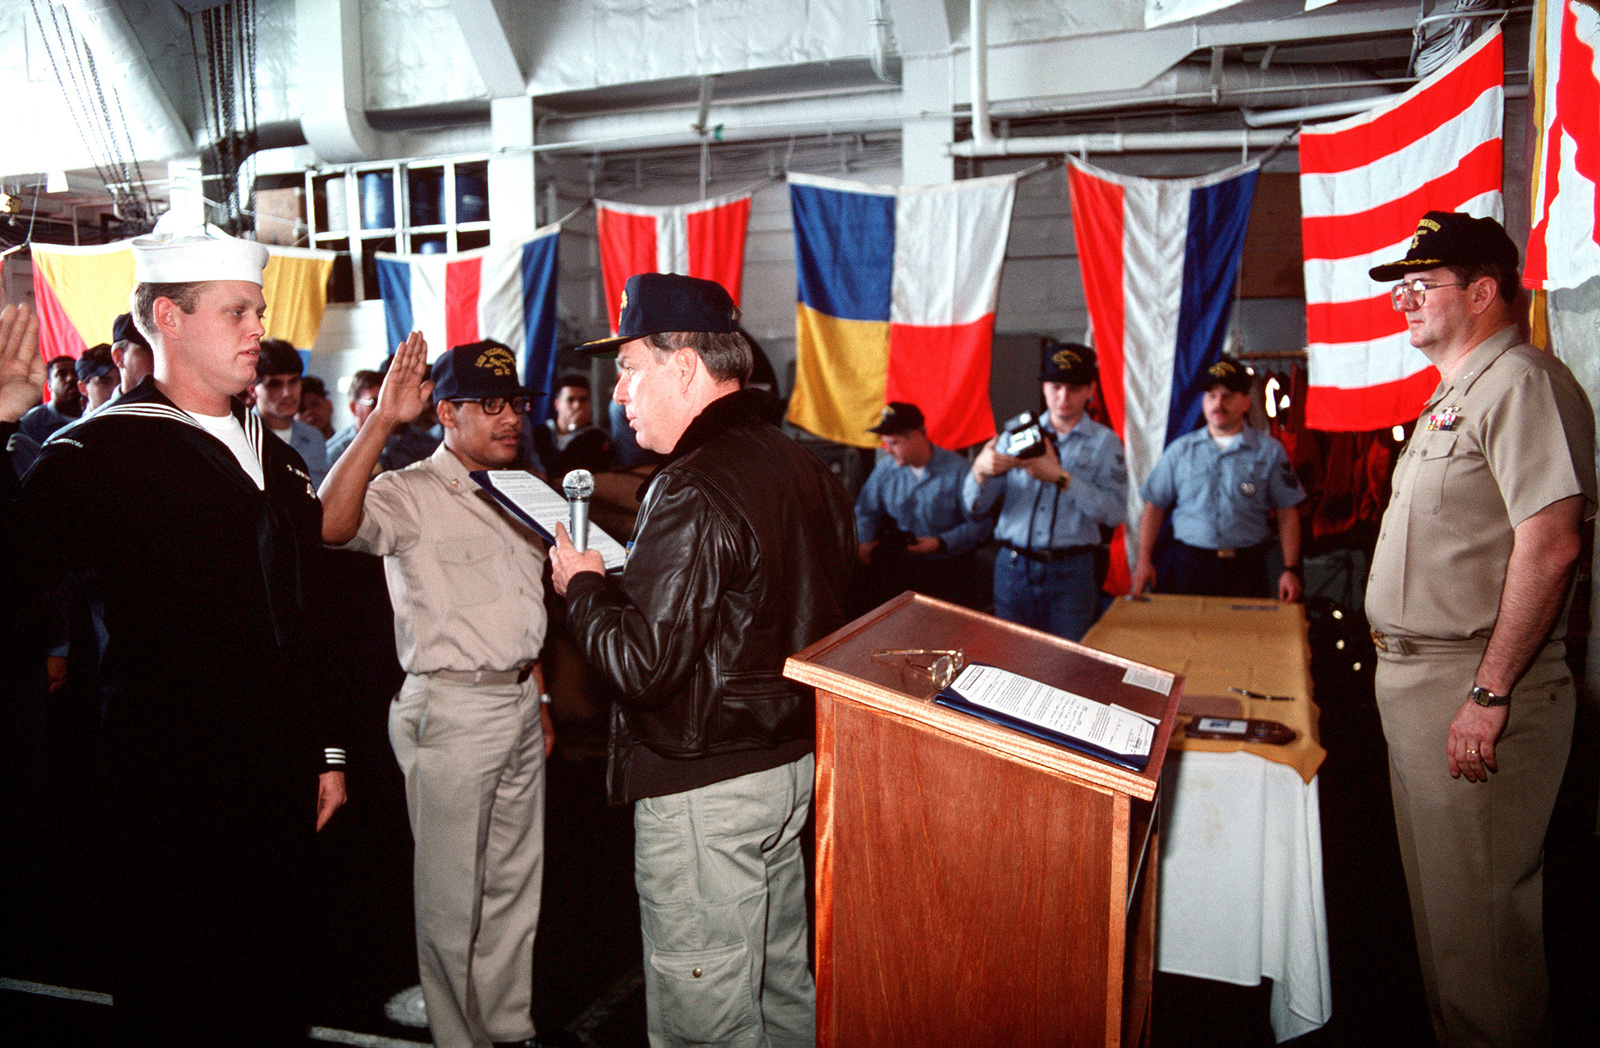 Secretary of the Navy H. Lawrence Garrett III, administers the oath of reenlistment to a pair of enlisted men while visiting the guided missile cruiser USS TICONDEROGA (CG-47) during Fleet Ex 1-90. CAPT Morris C. Foote, the TICONDEROGA's Commanding Officer, is at right